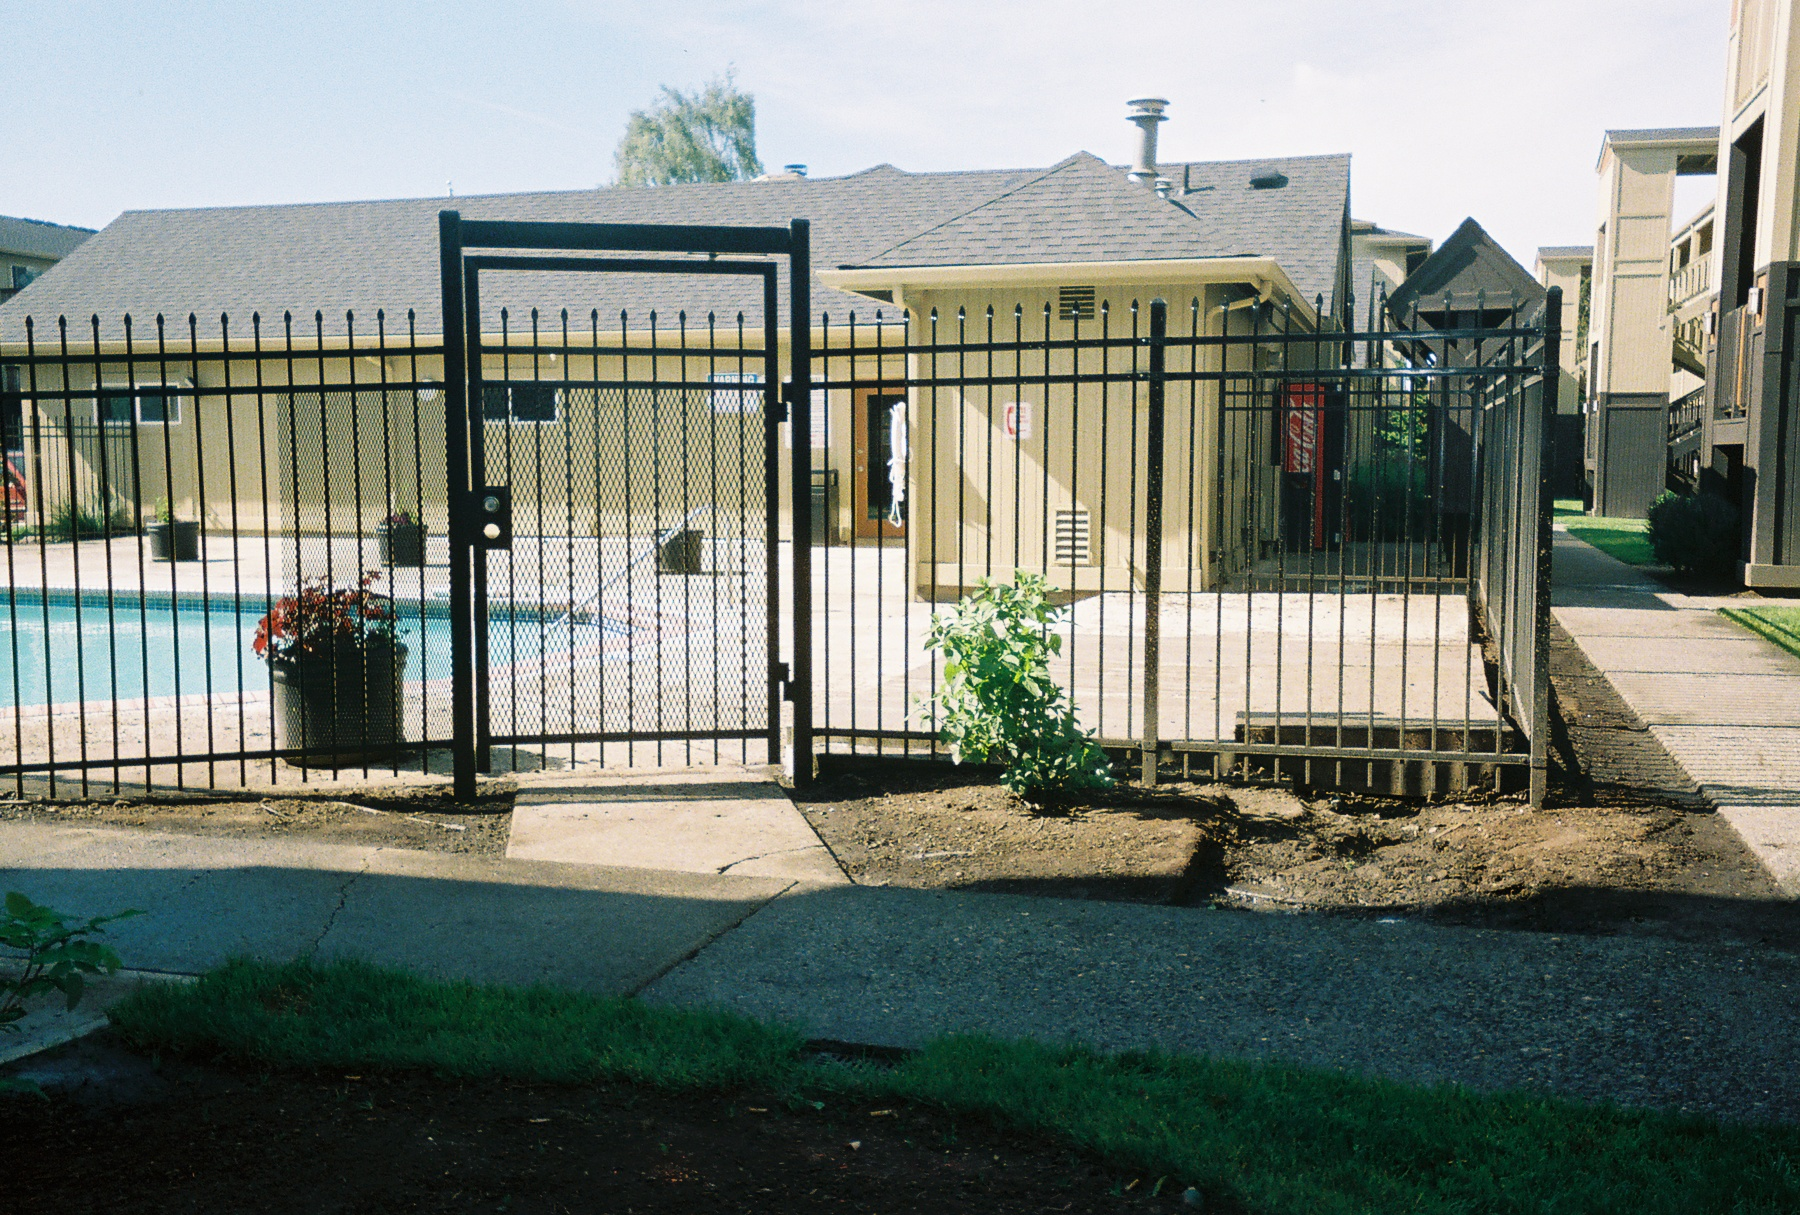 Ornamental Fence: self-closing Pre-Hung gate. Contact Vancouver Washington's Best Fence Builders. Providing the best in all your fence needs for over 35 years. Call: 360-254-2299 today